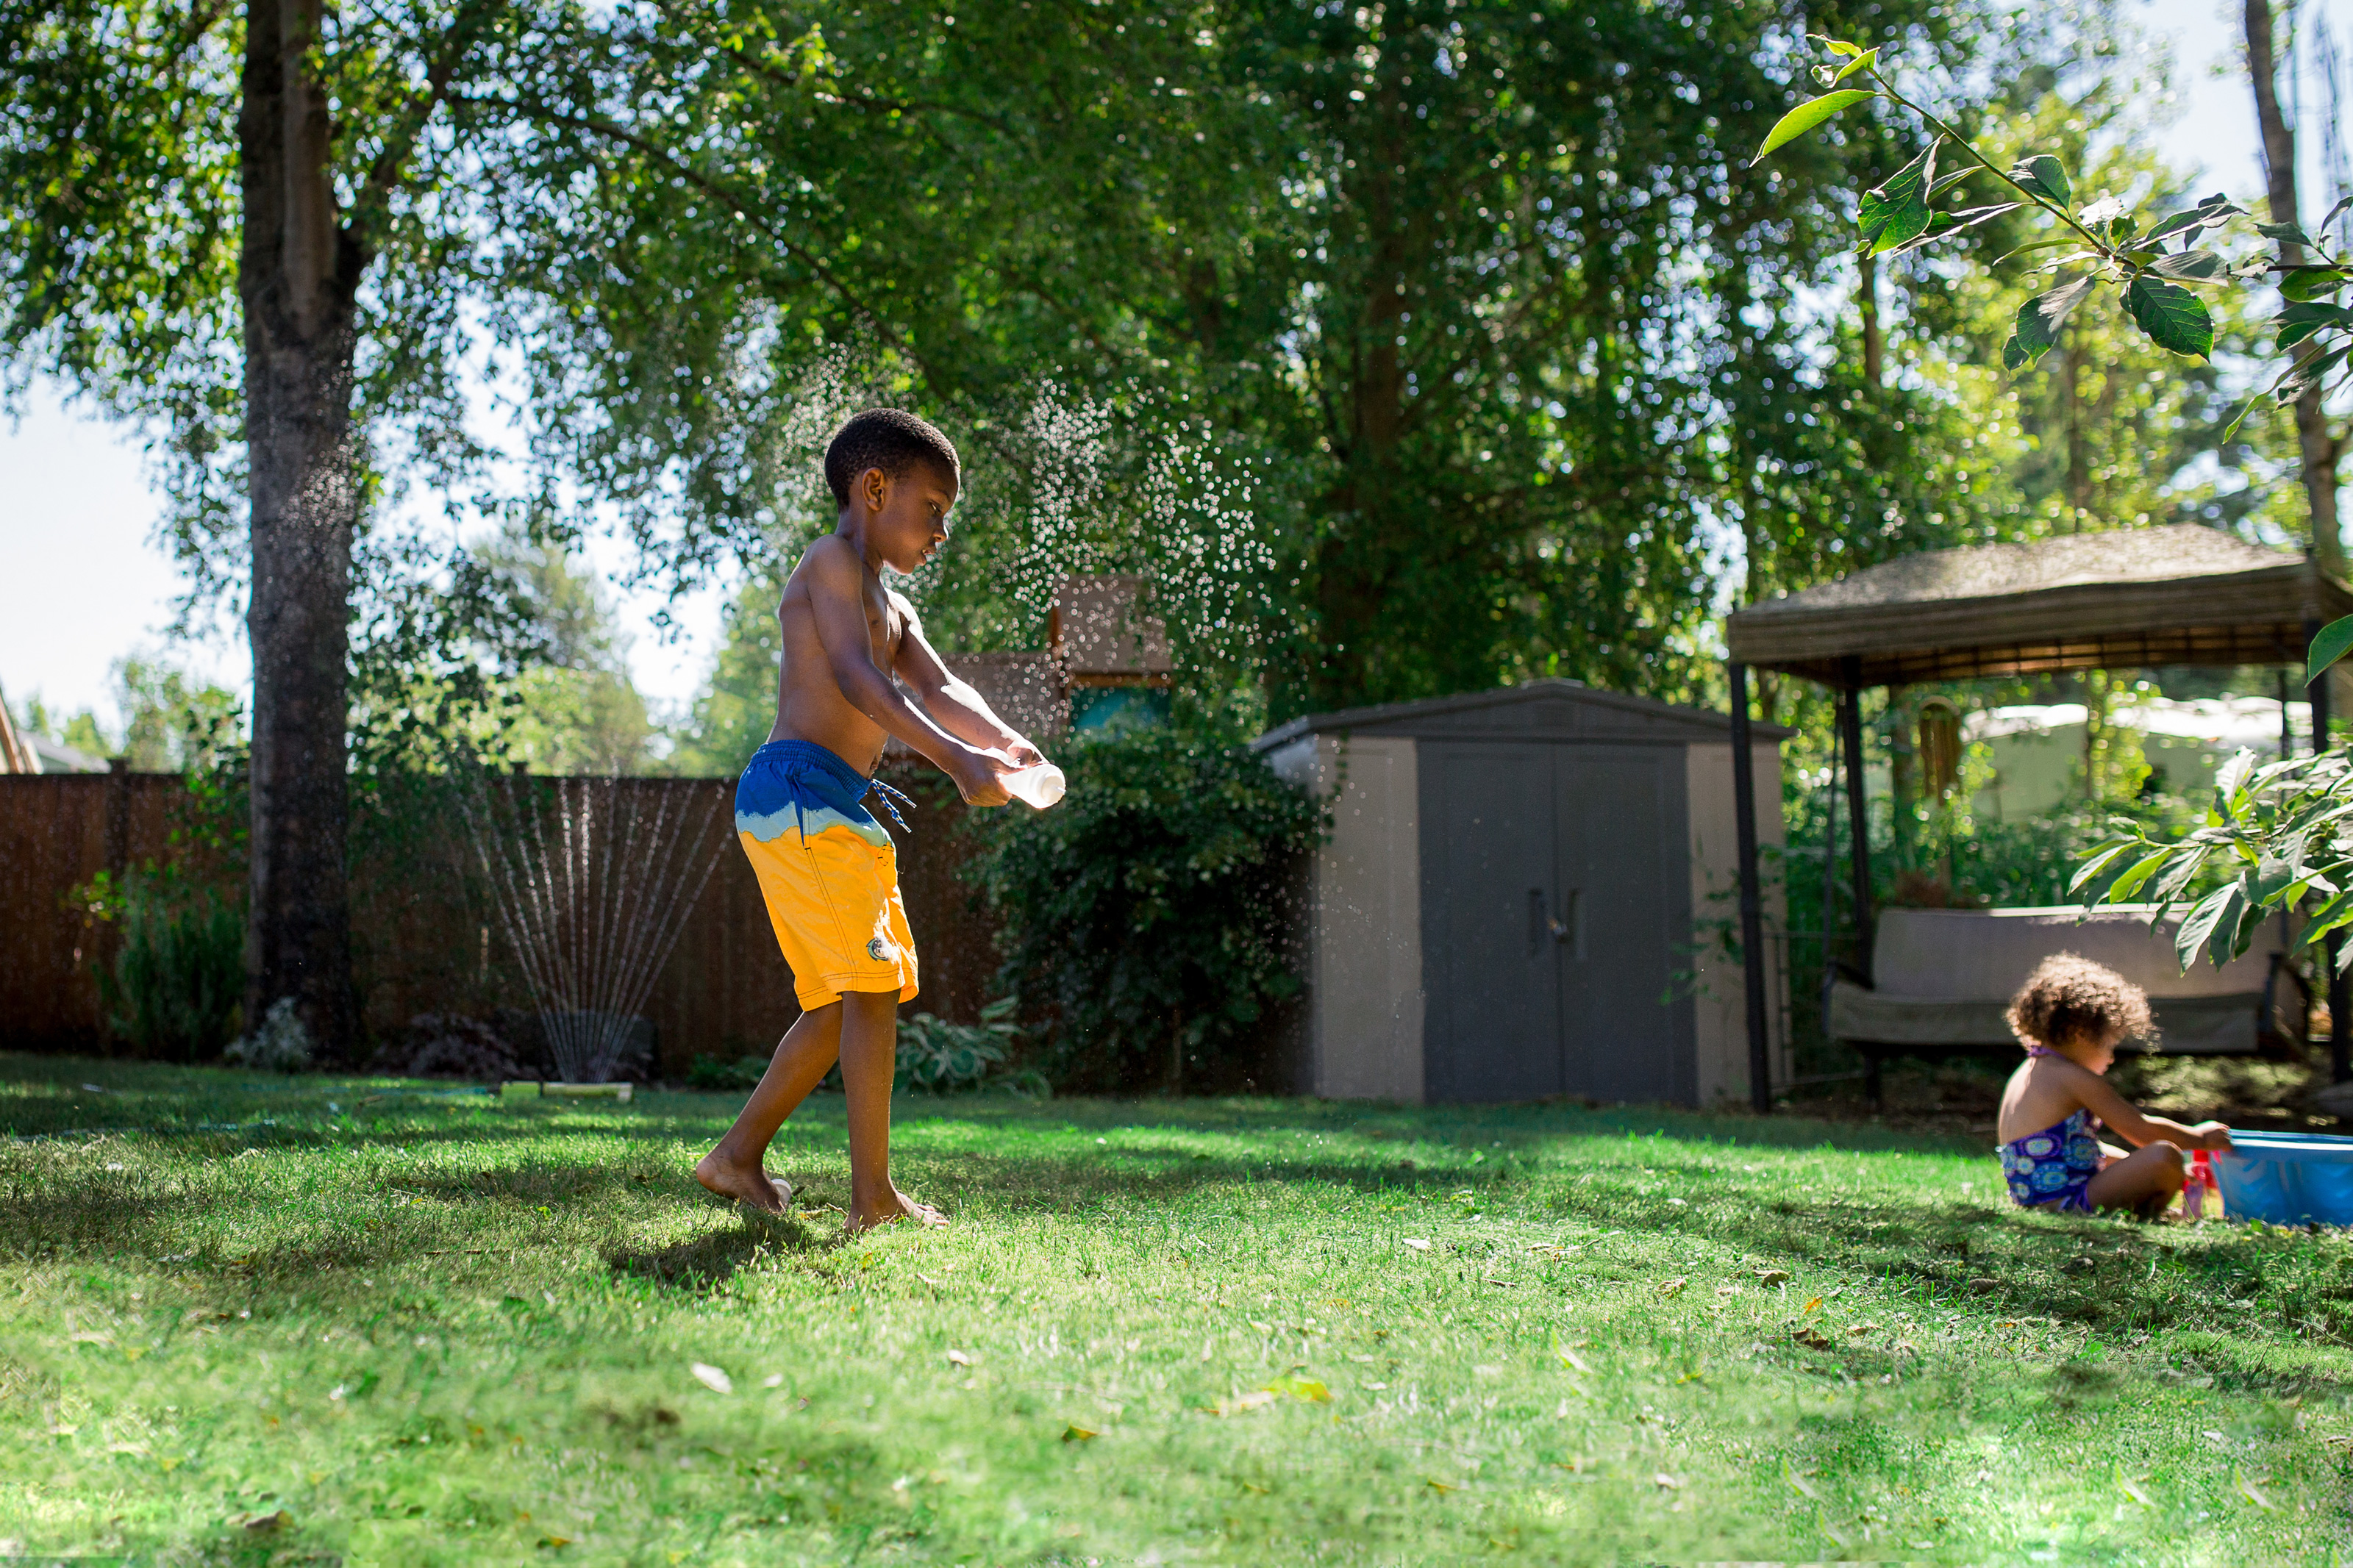 Boy playing in the lawn sprinkler at home